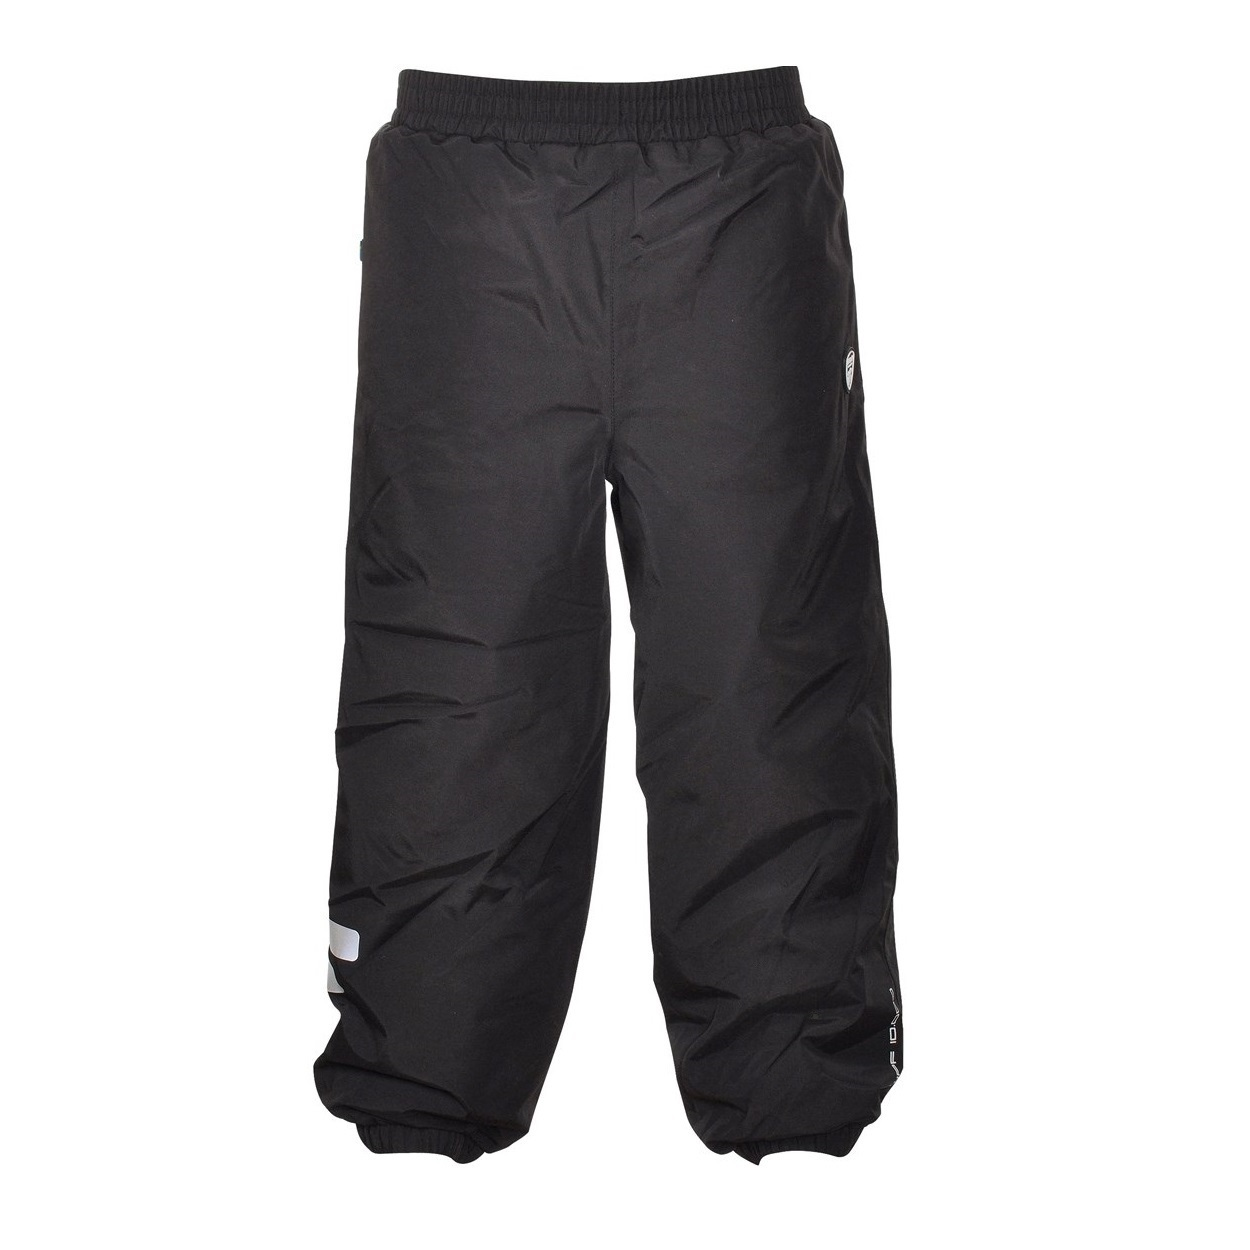 Брюки Lindberg solden waist pants black